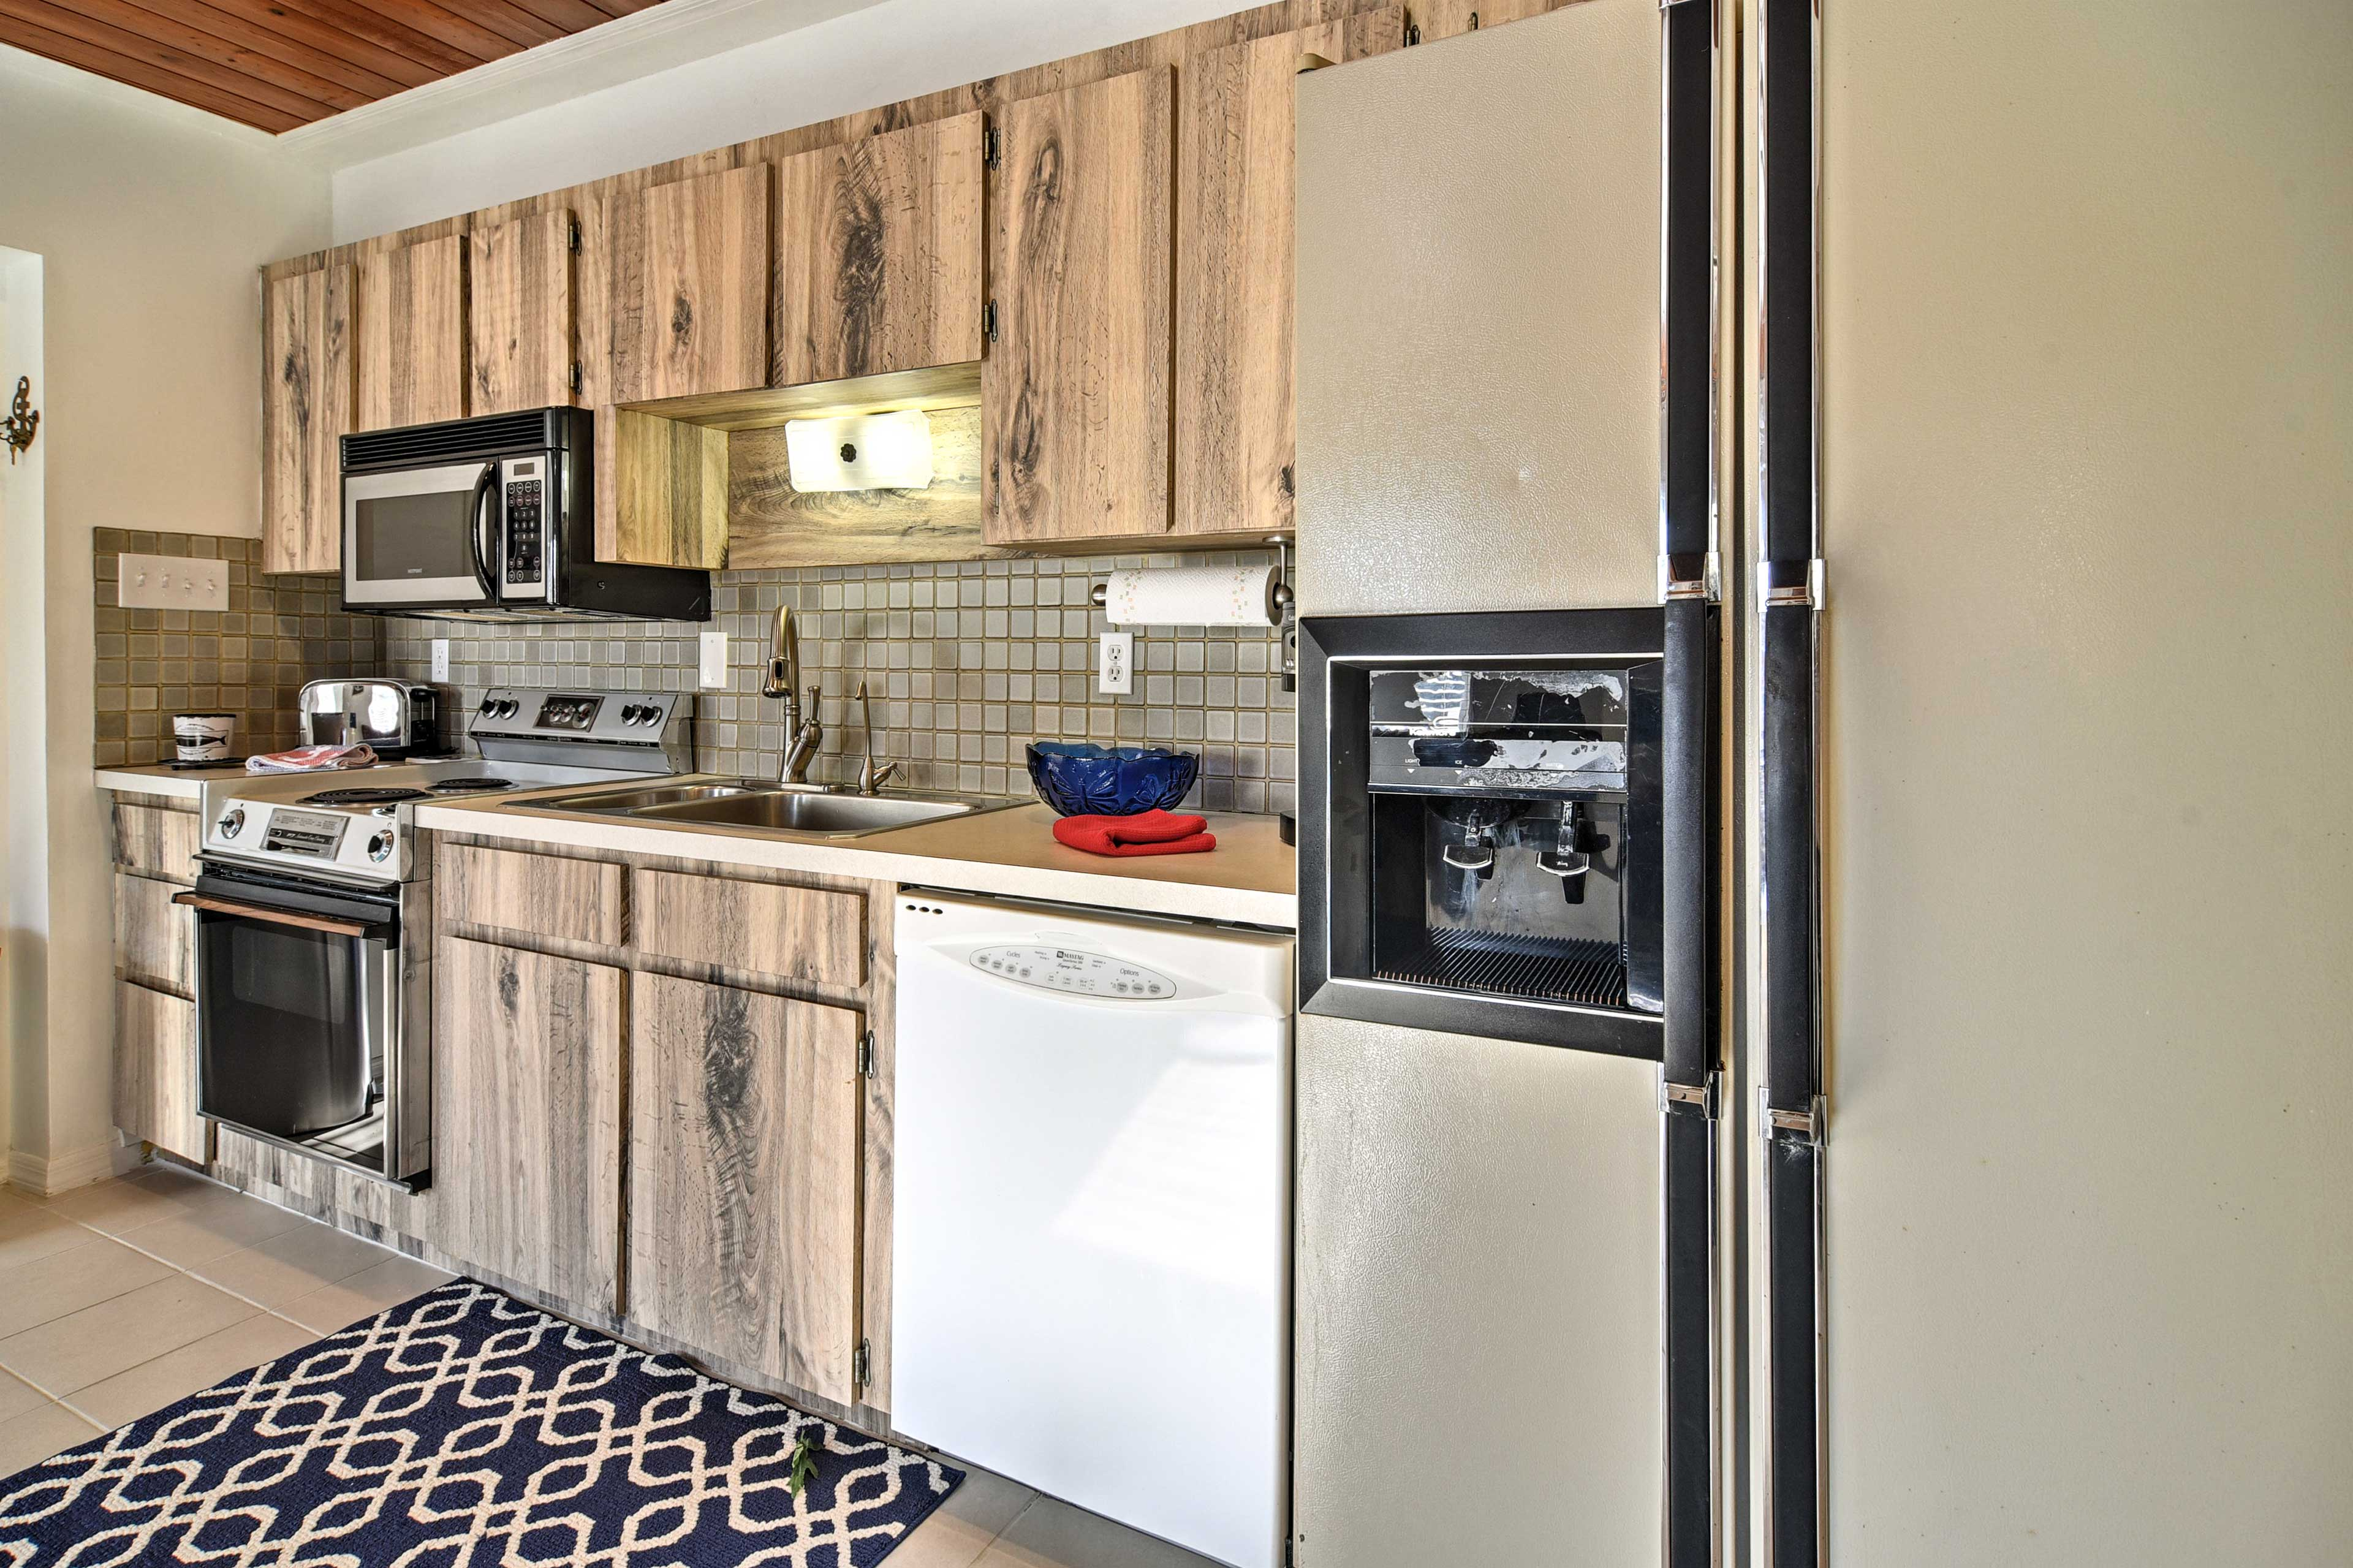 A dishwasher adds the convenience of home to your stay.